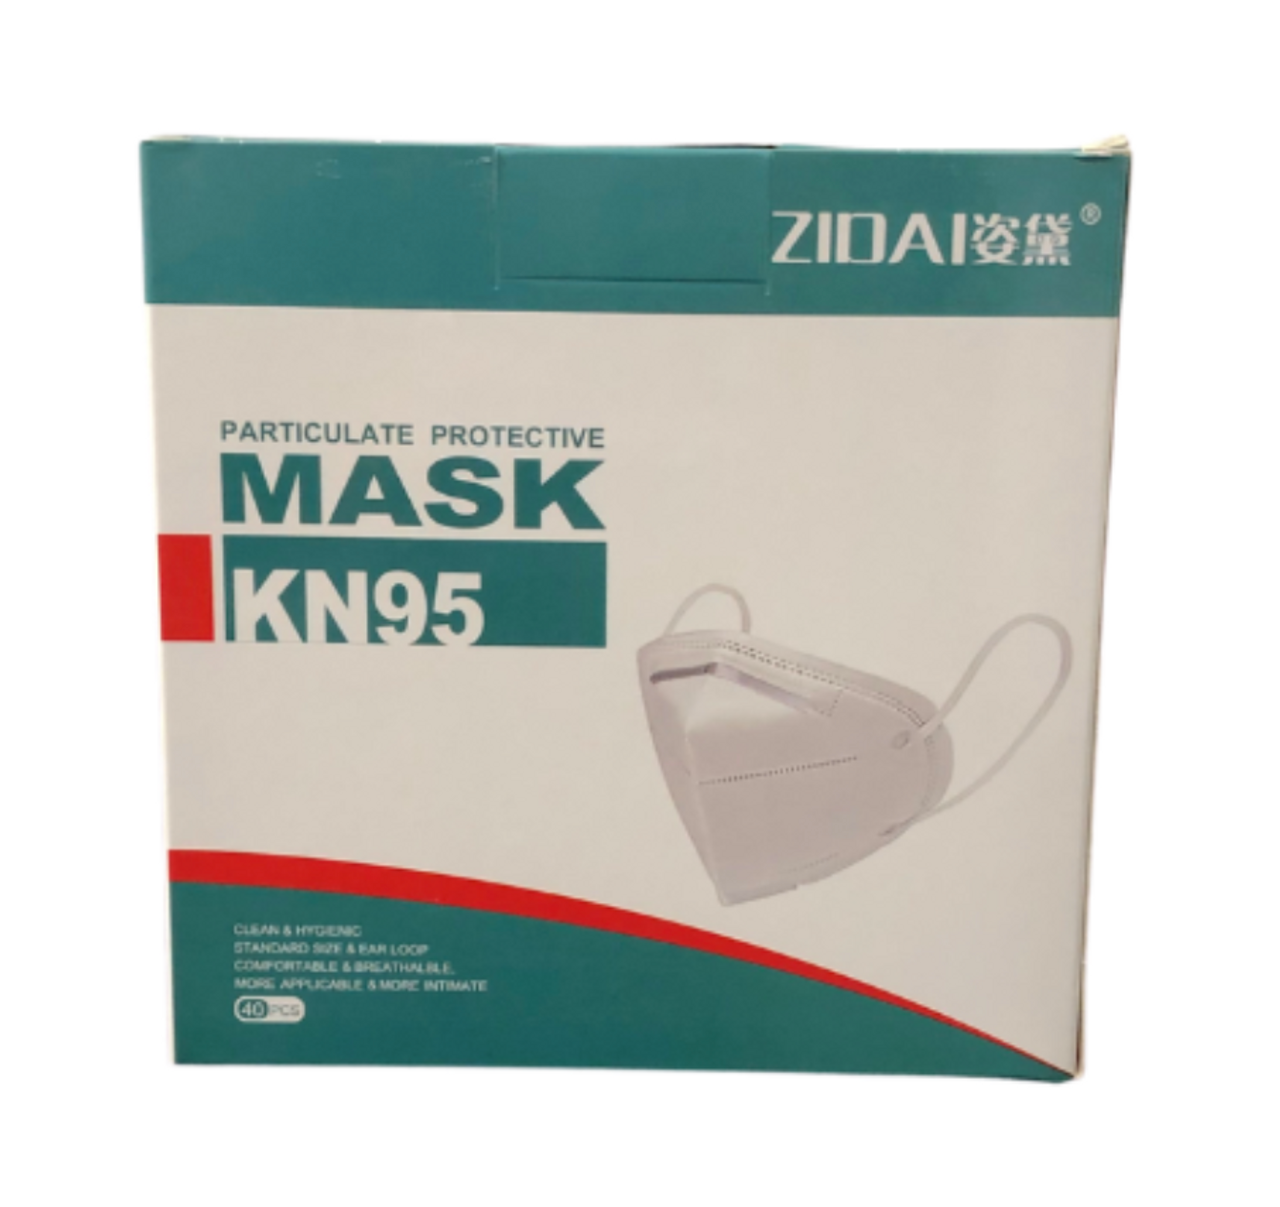 KN95 Mask (Single or 40 Pack)